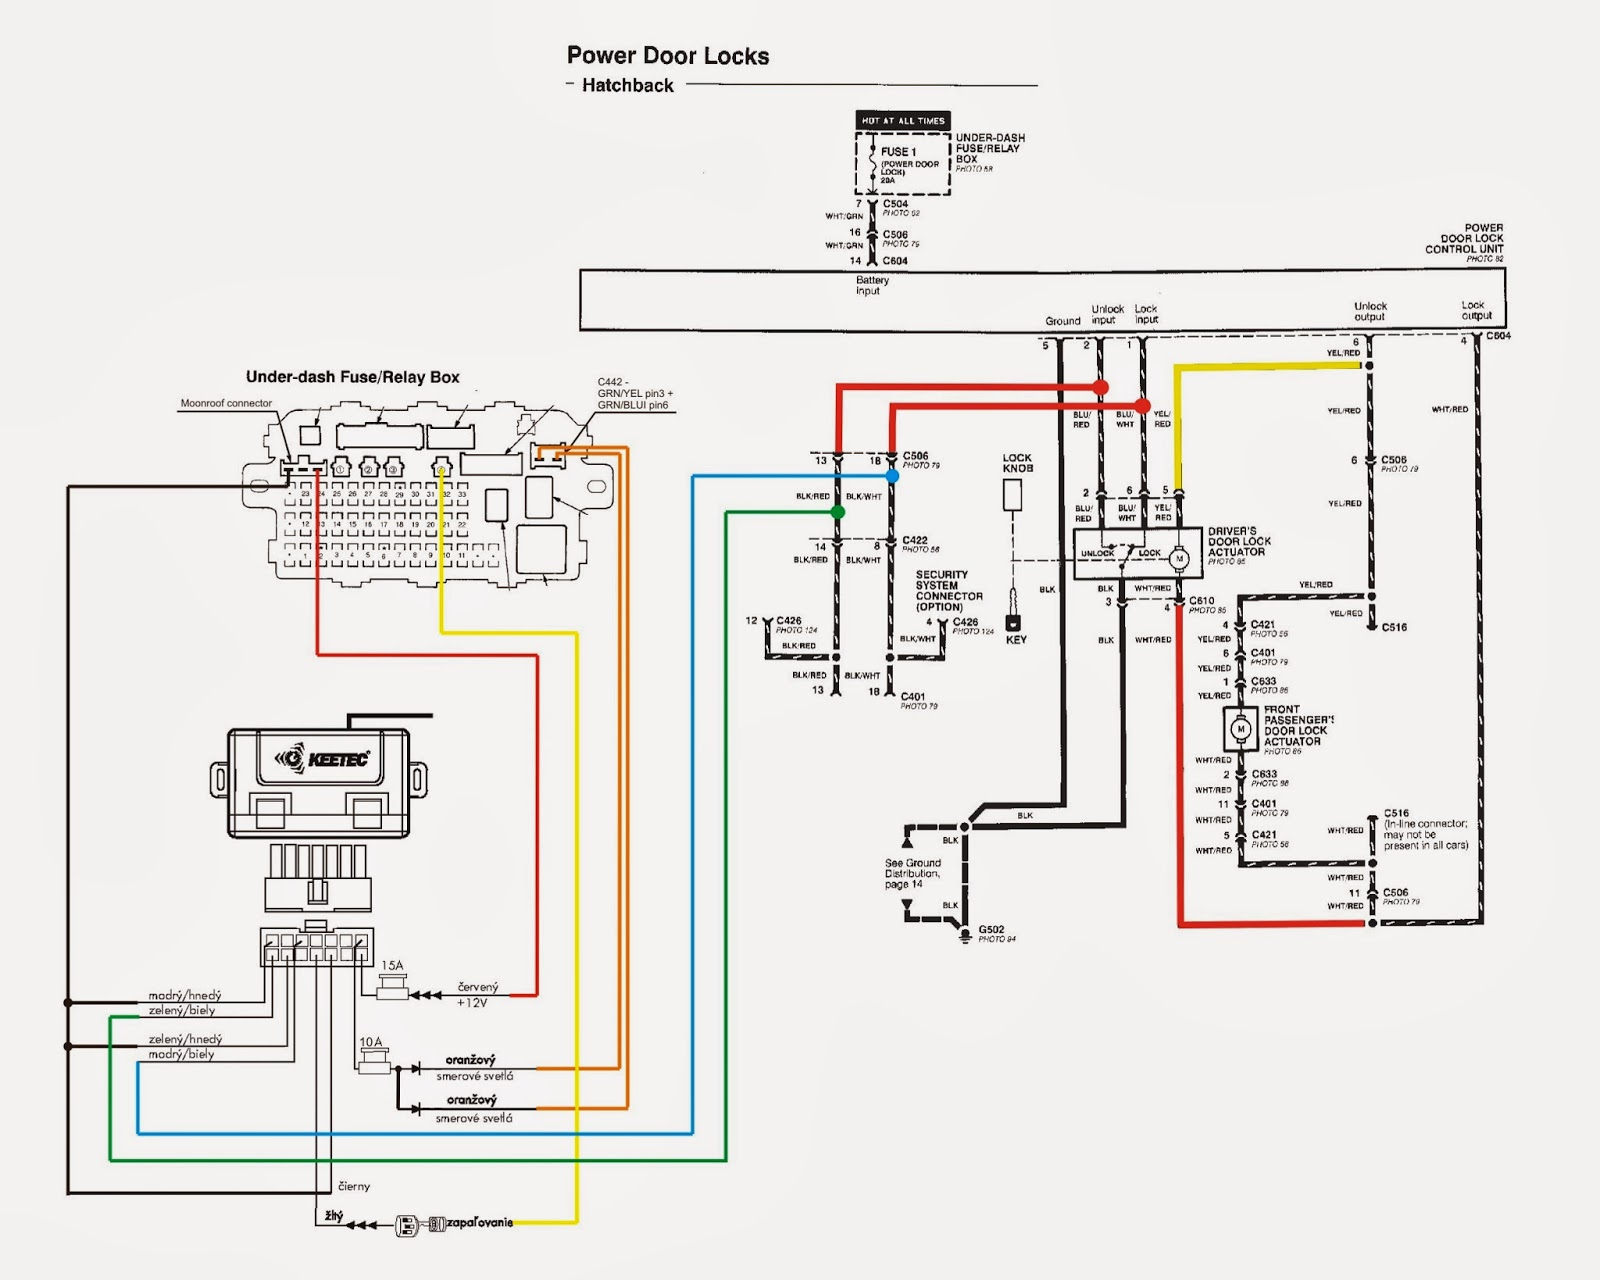 dc2 wiring diagram   18 wiring diagram images